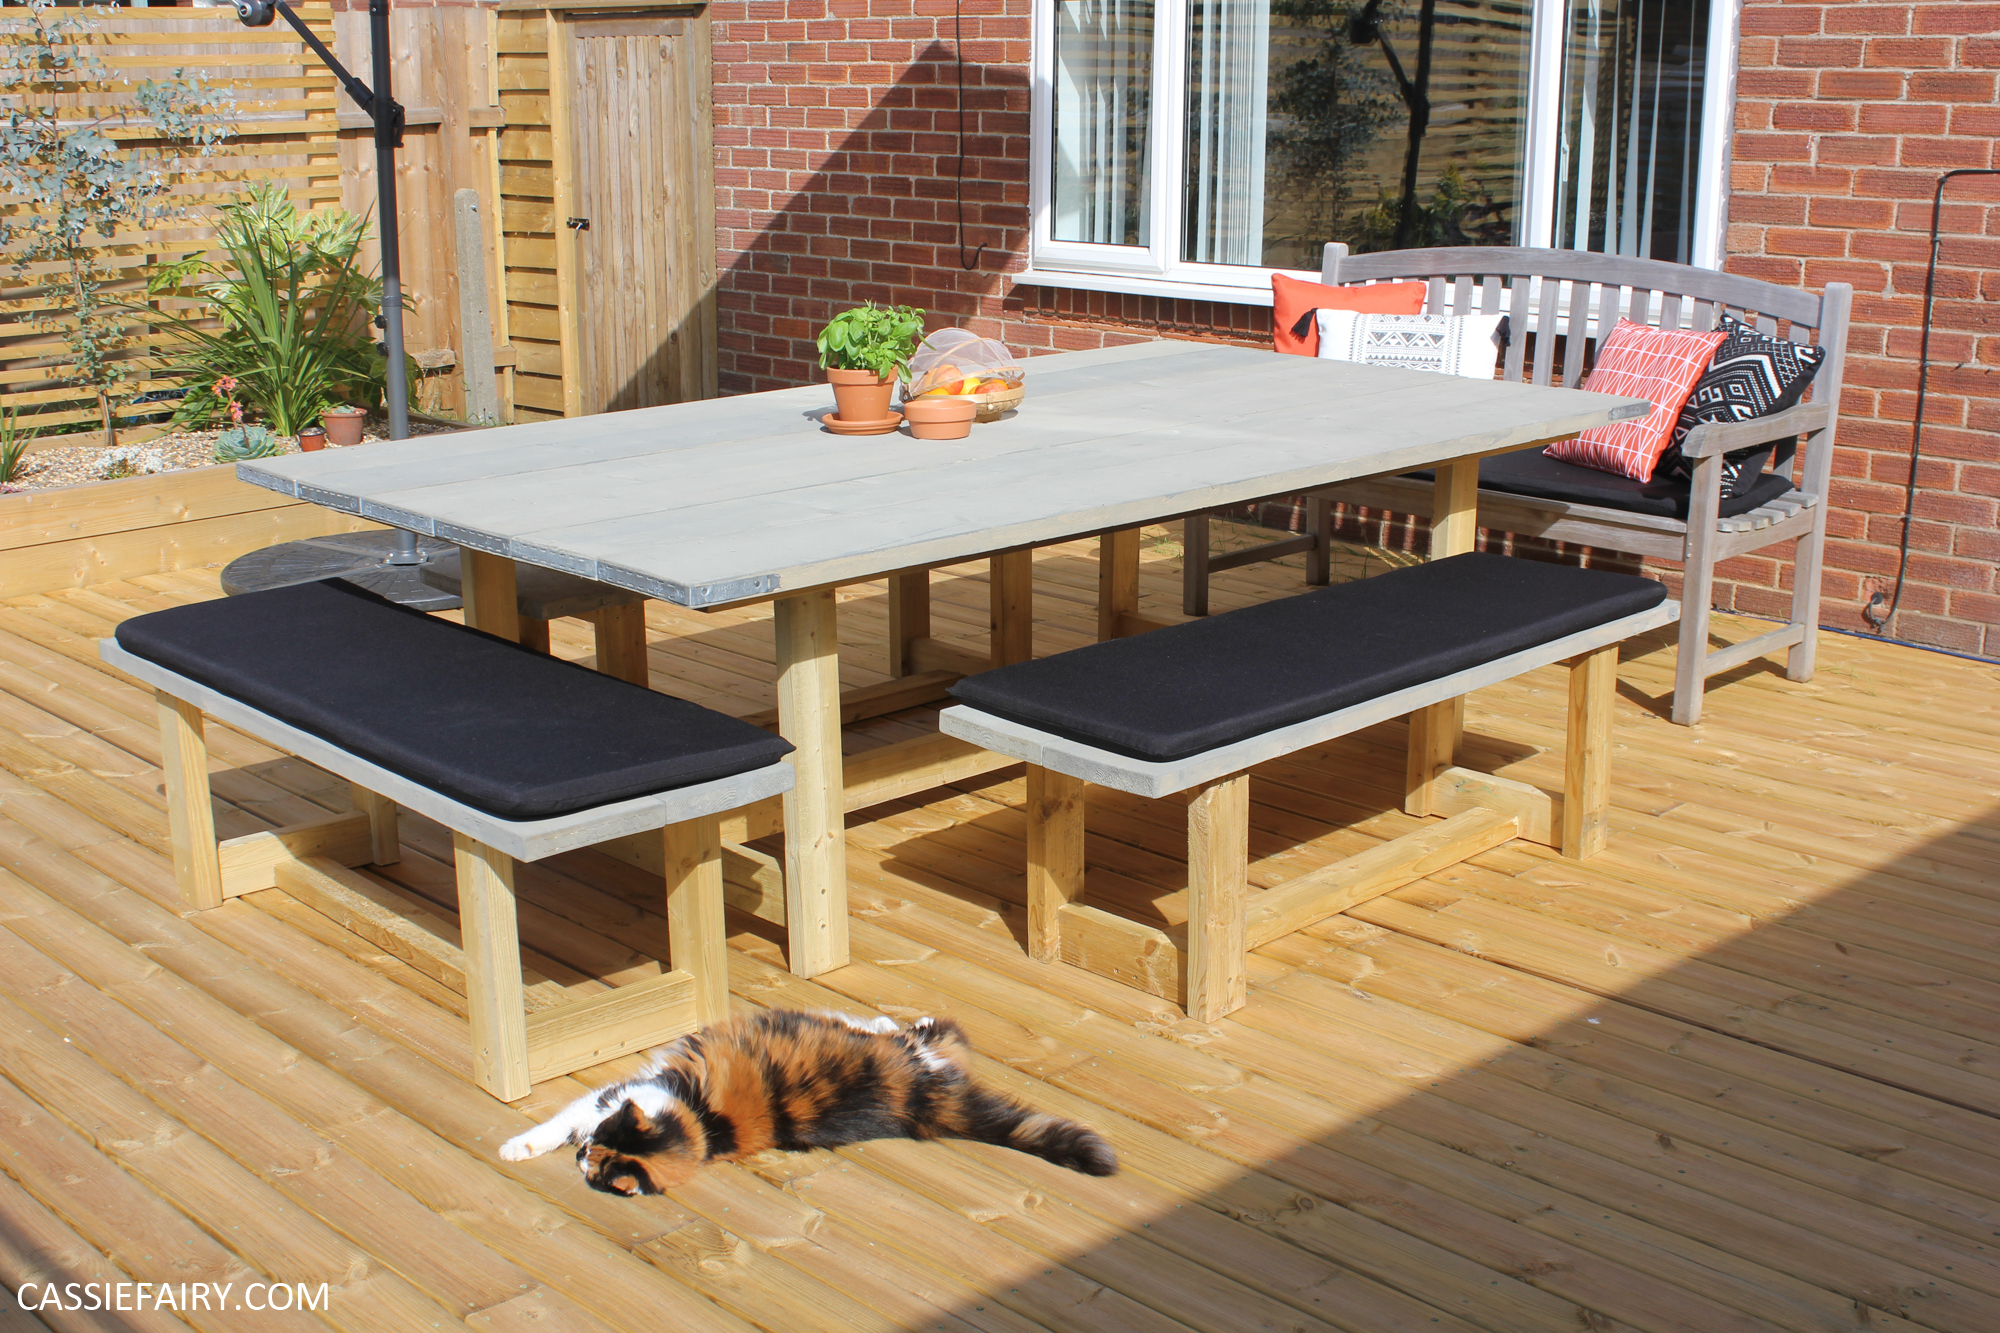 Thrifty Diy How To Upcycle Scaffolding Boards Into A Garden Table